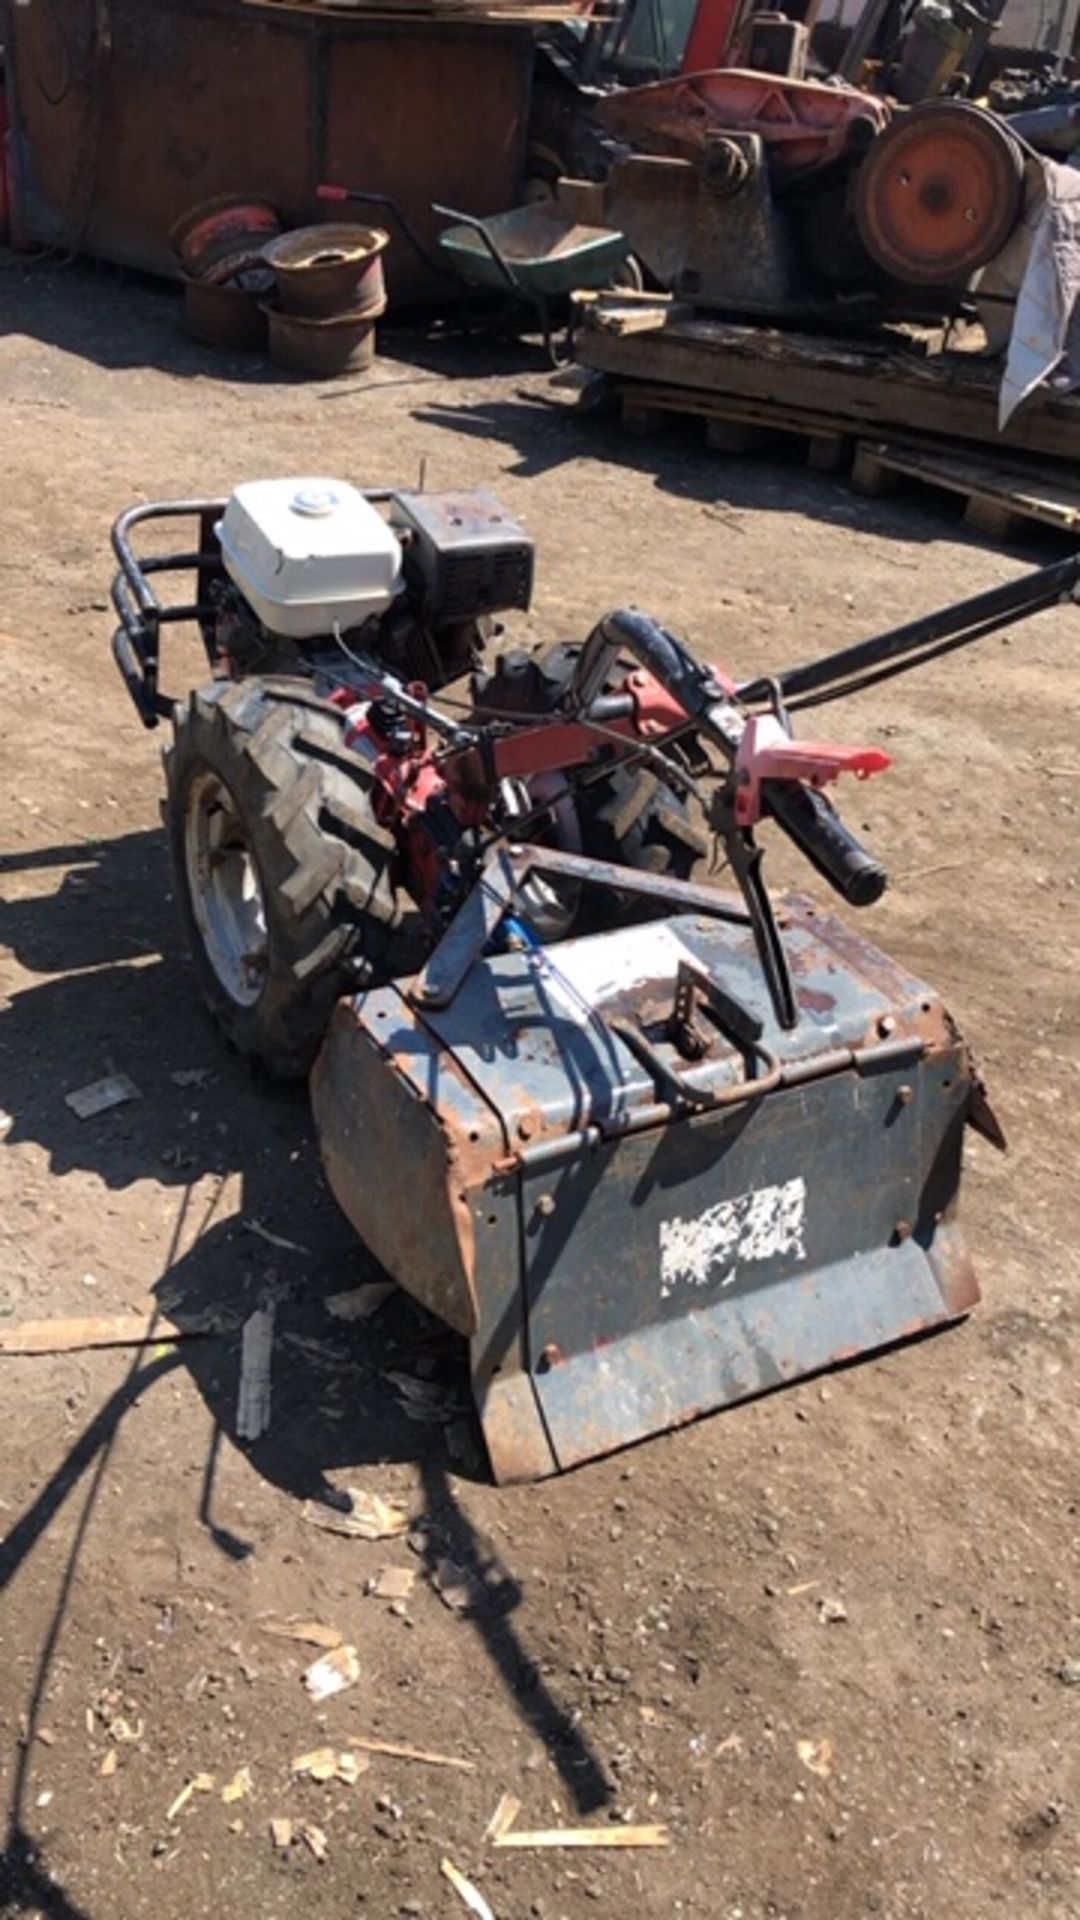 Lot 260 - CAMON HEAVY DUTY HONDA ENGINED ROTORVATOR. WHEN TESTED WAS SEEN TO RUN, DRIVE AND BLADES TURNED